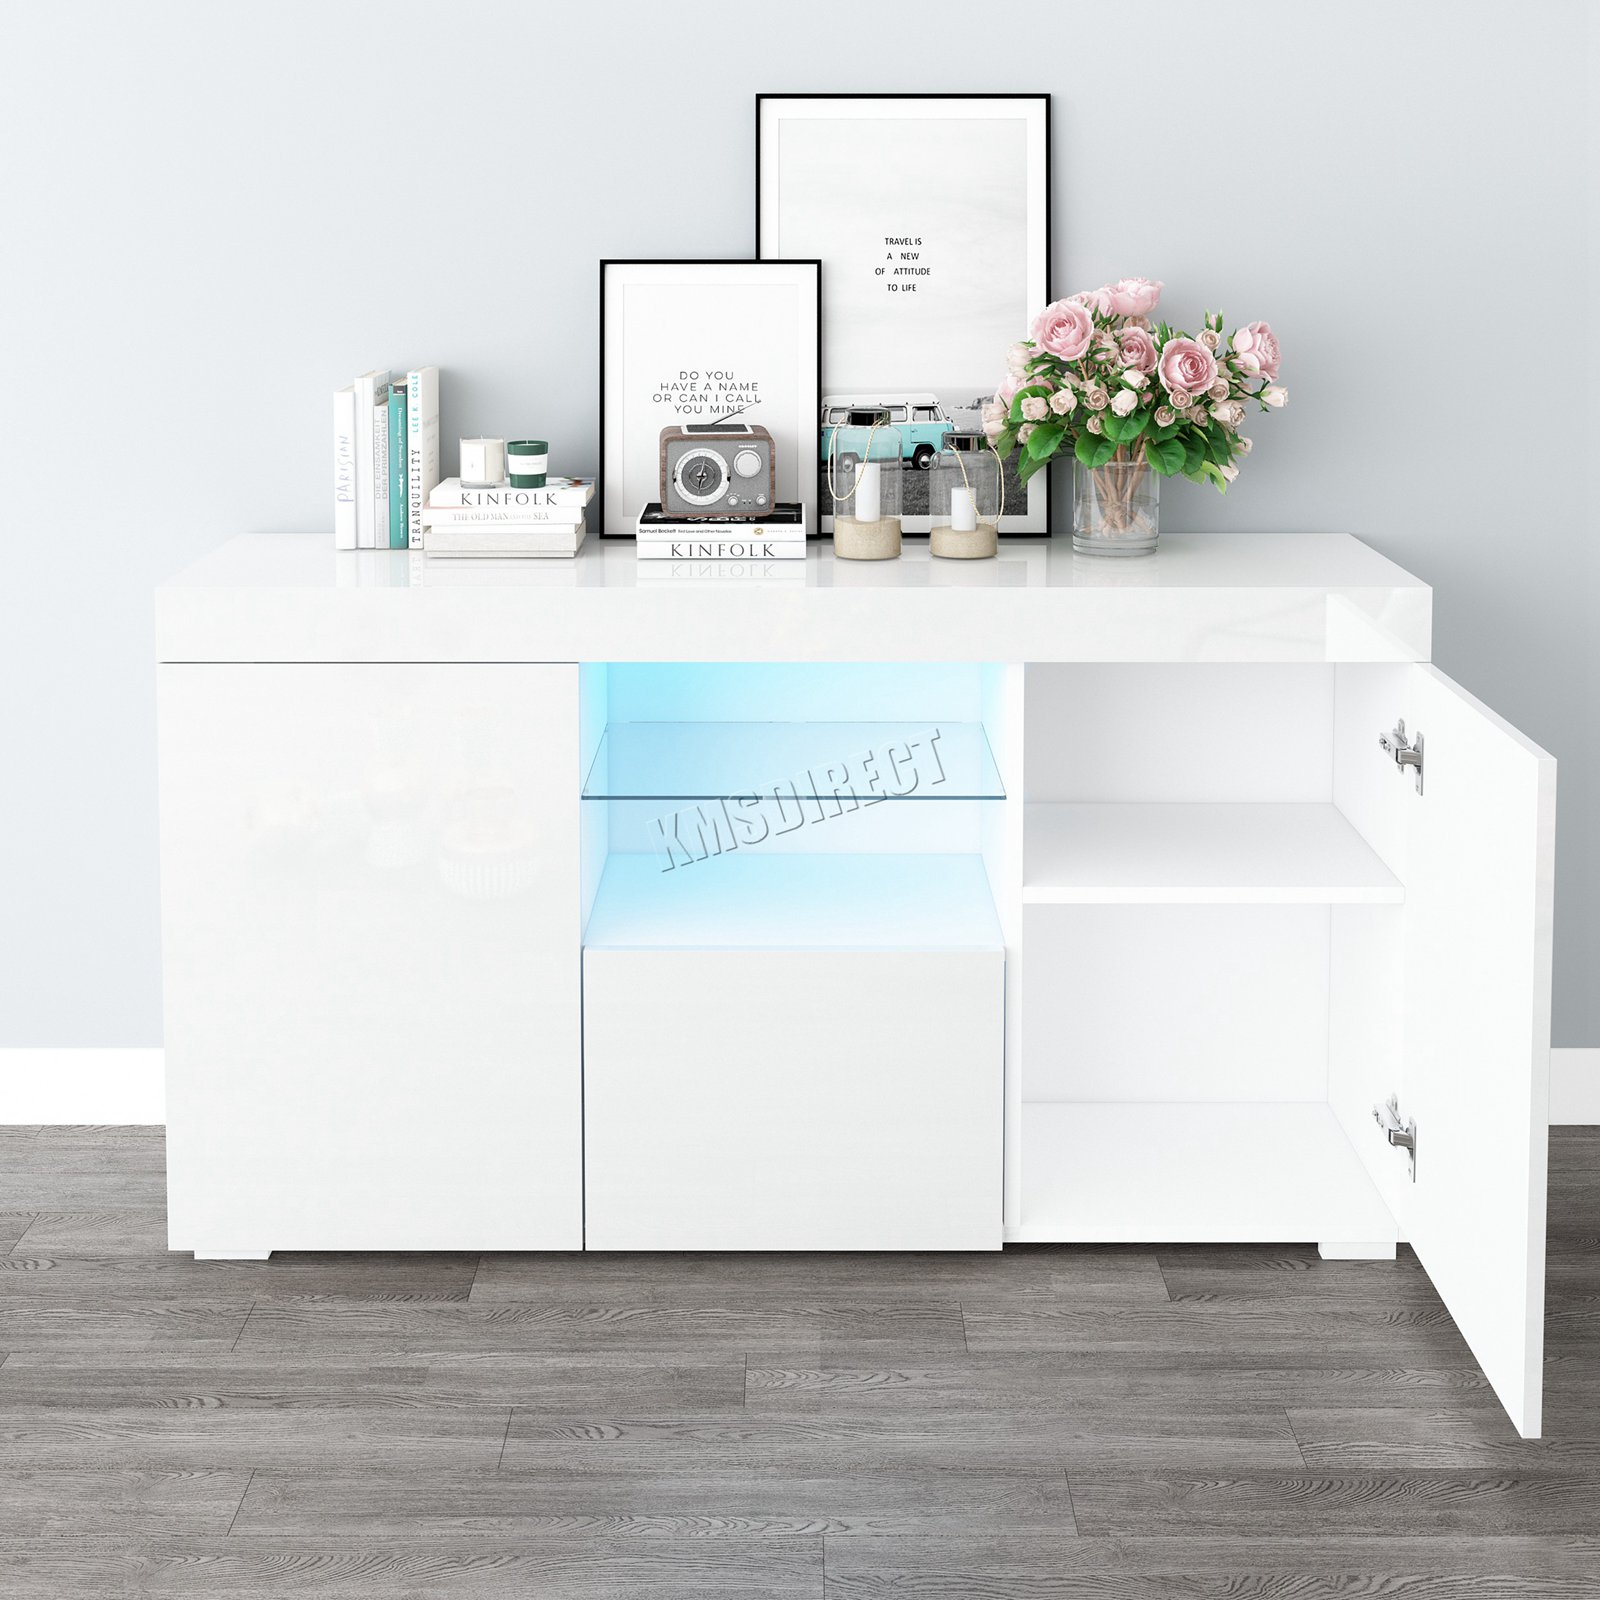 Westwood Pb High Gloss Cabinet Led Bookshelf Sideboard